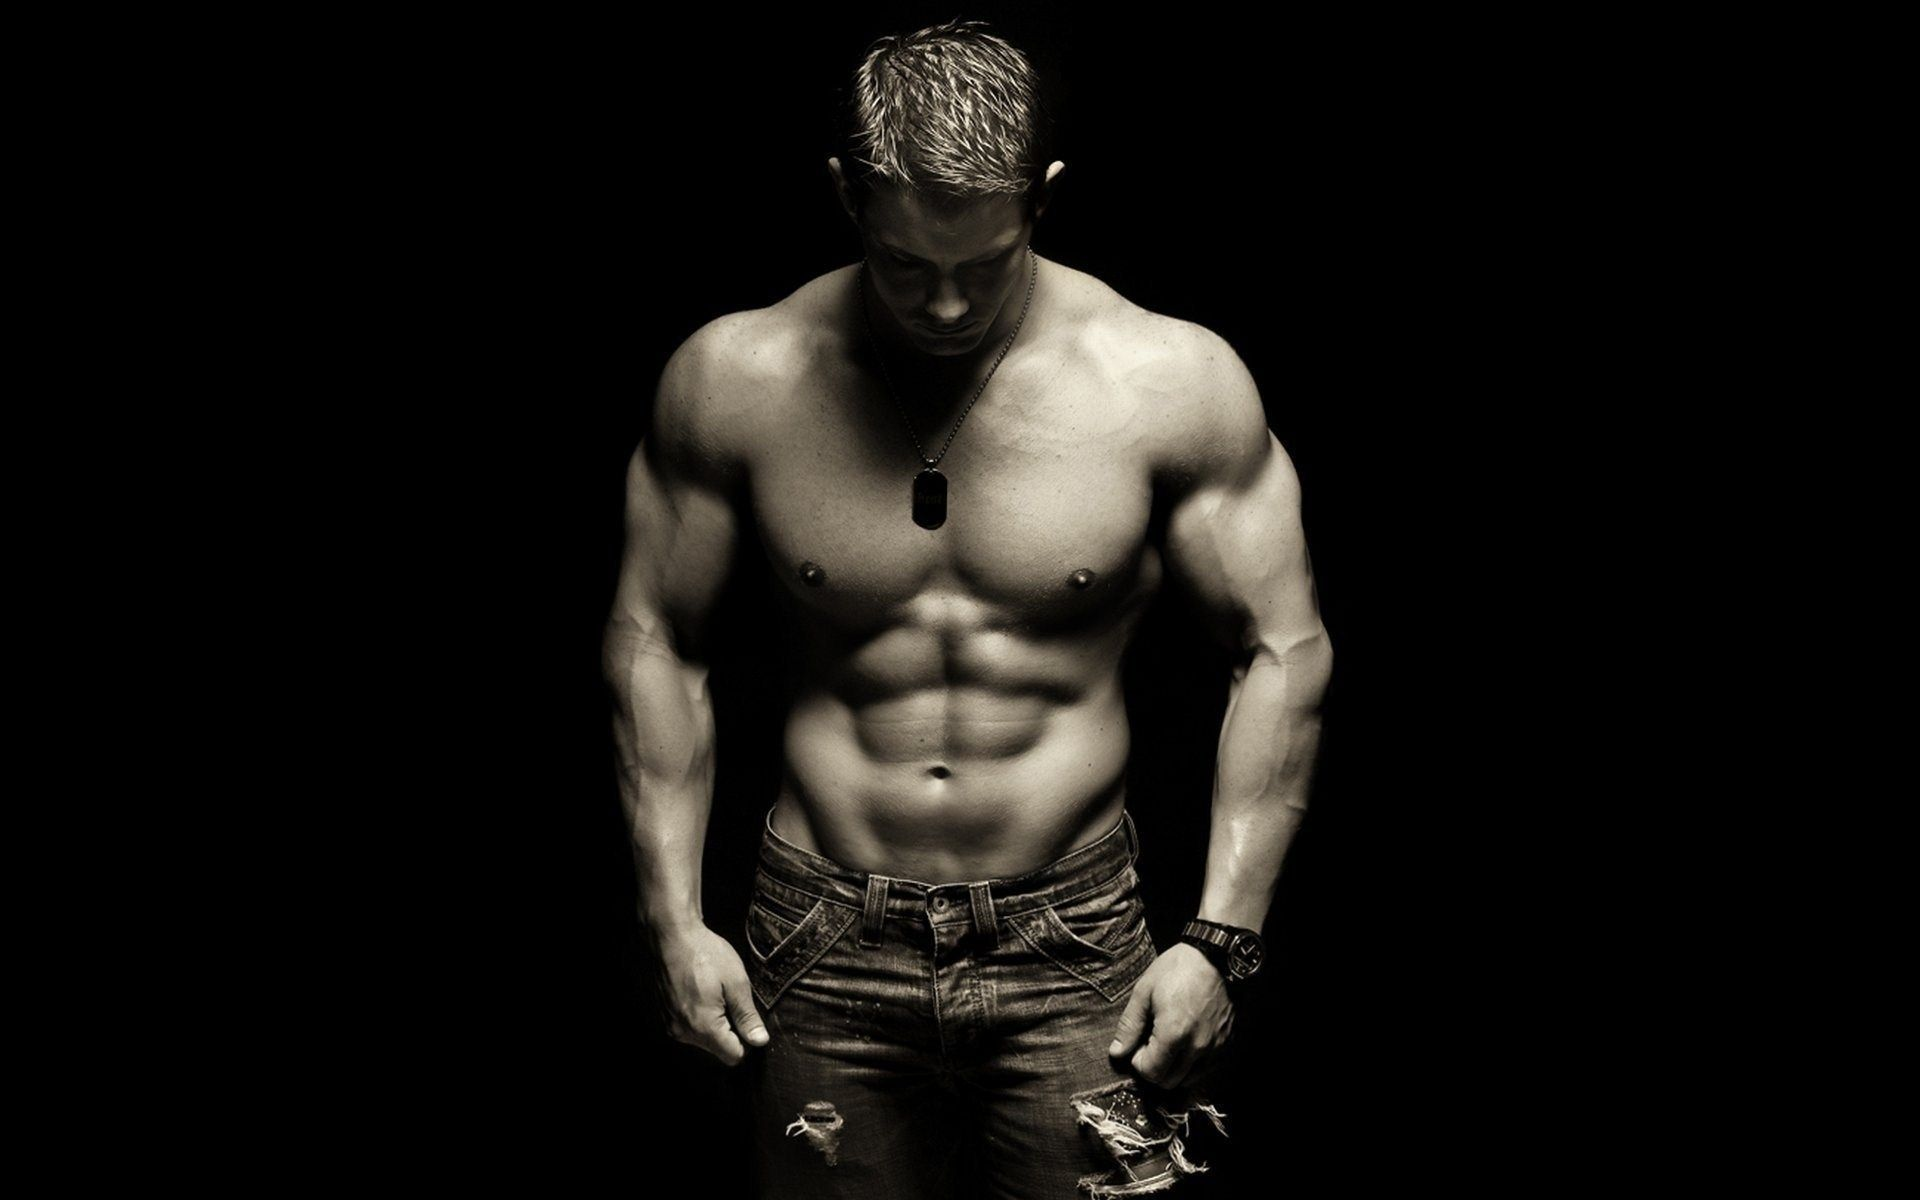 HD Wallpaper Body Builder